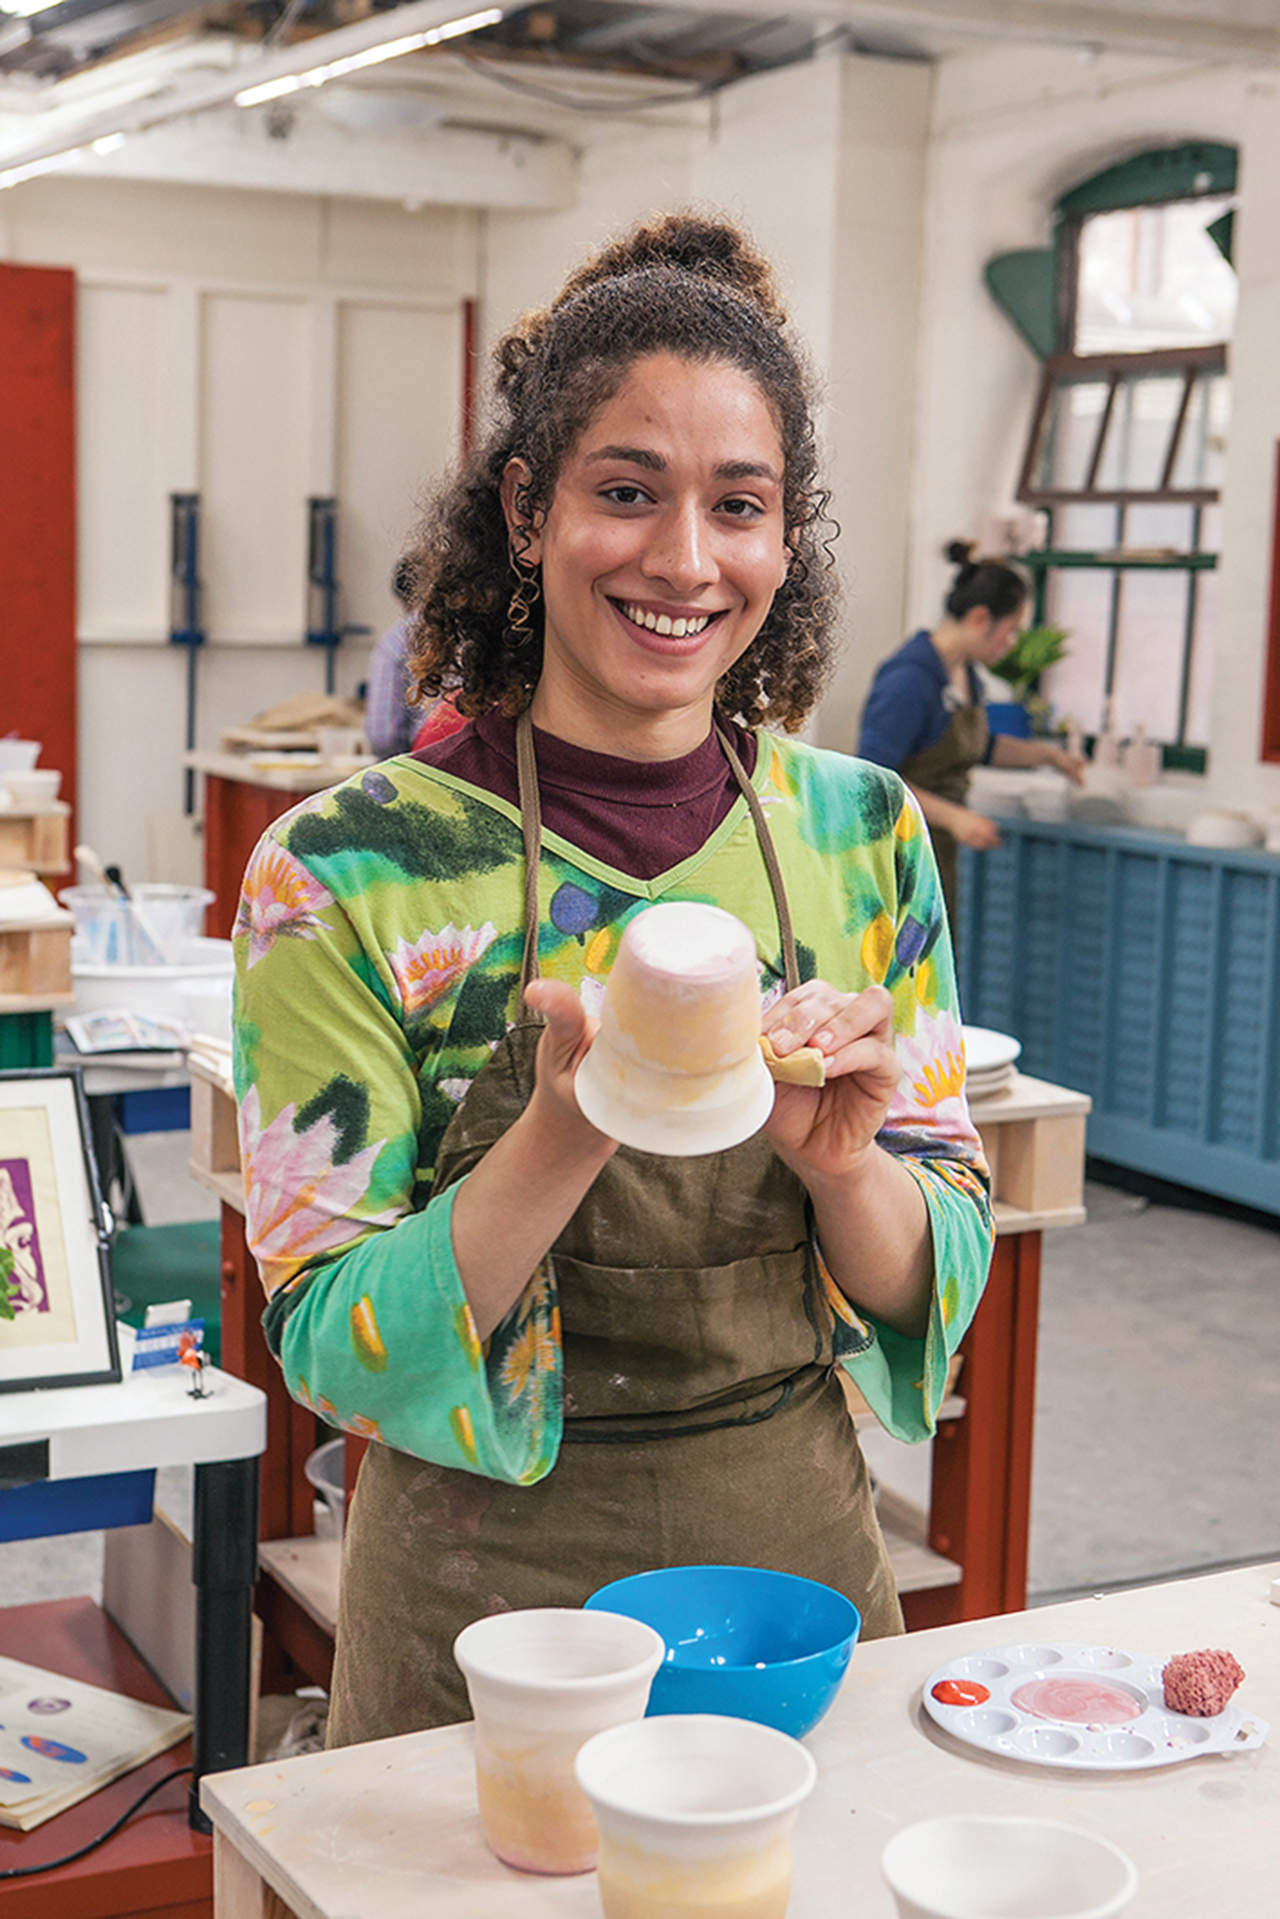 Kiln me softly: why Great Pottery Throw Down is the new, surprisingly moving, Bake Off